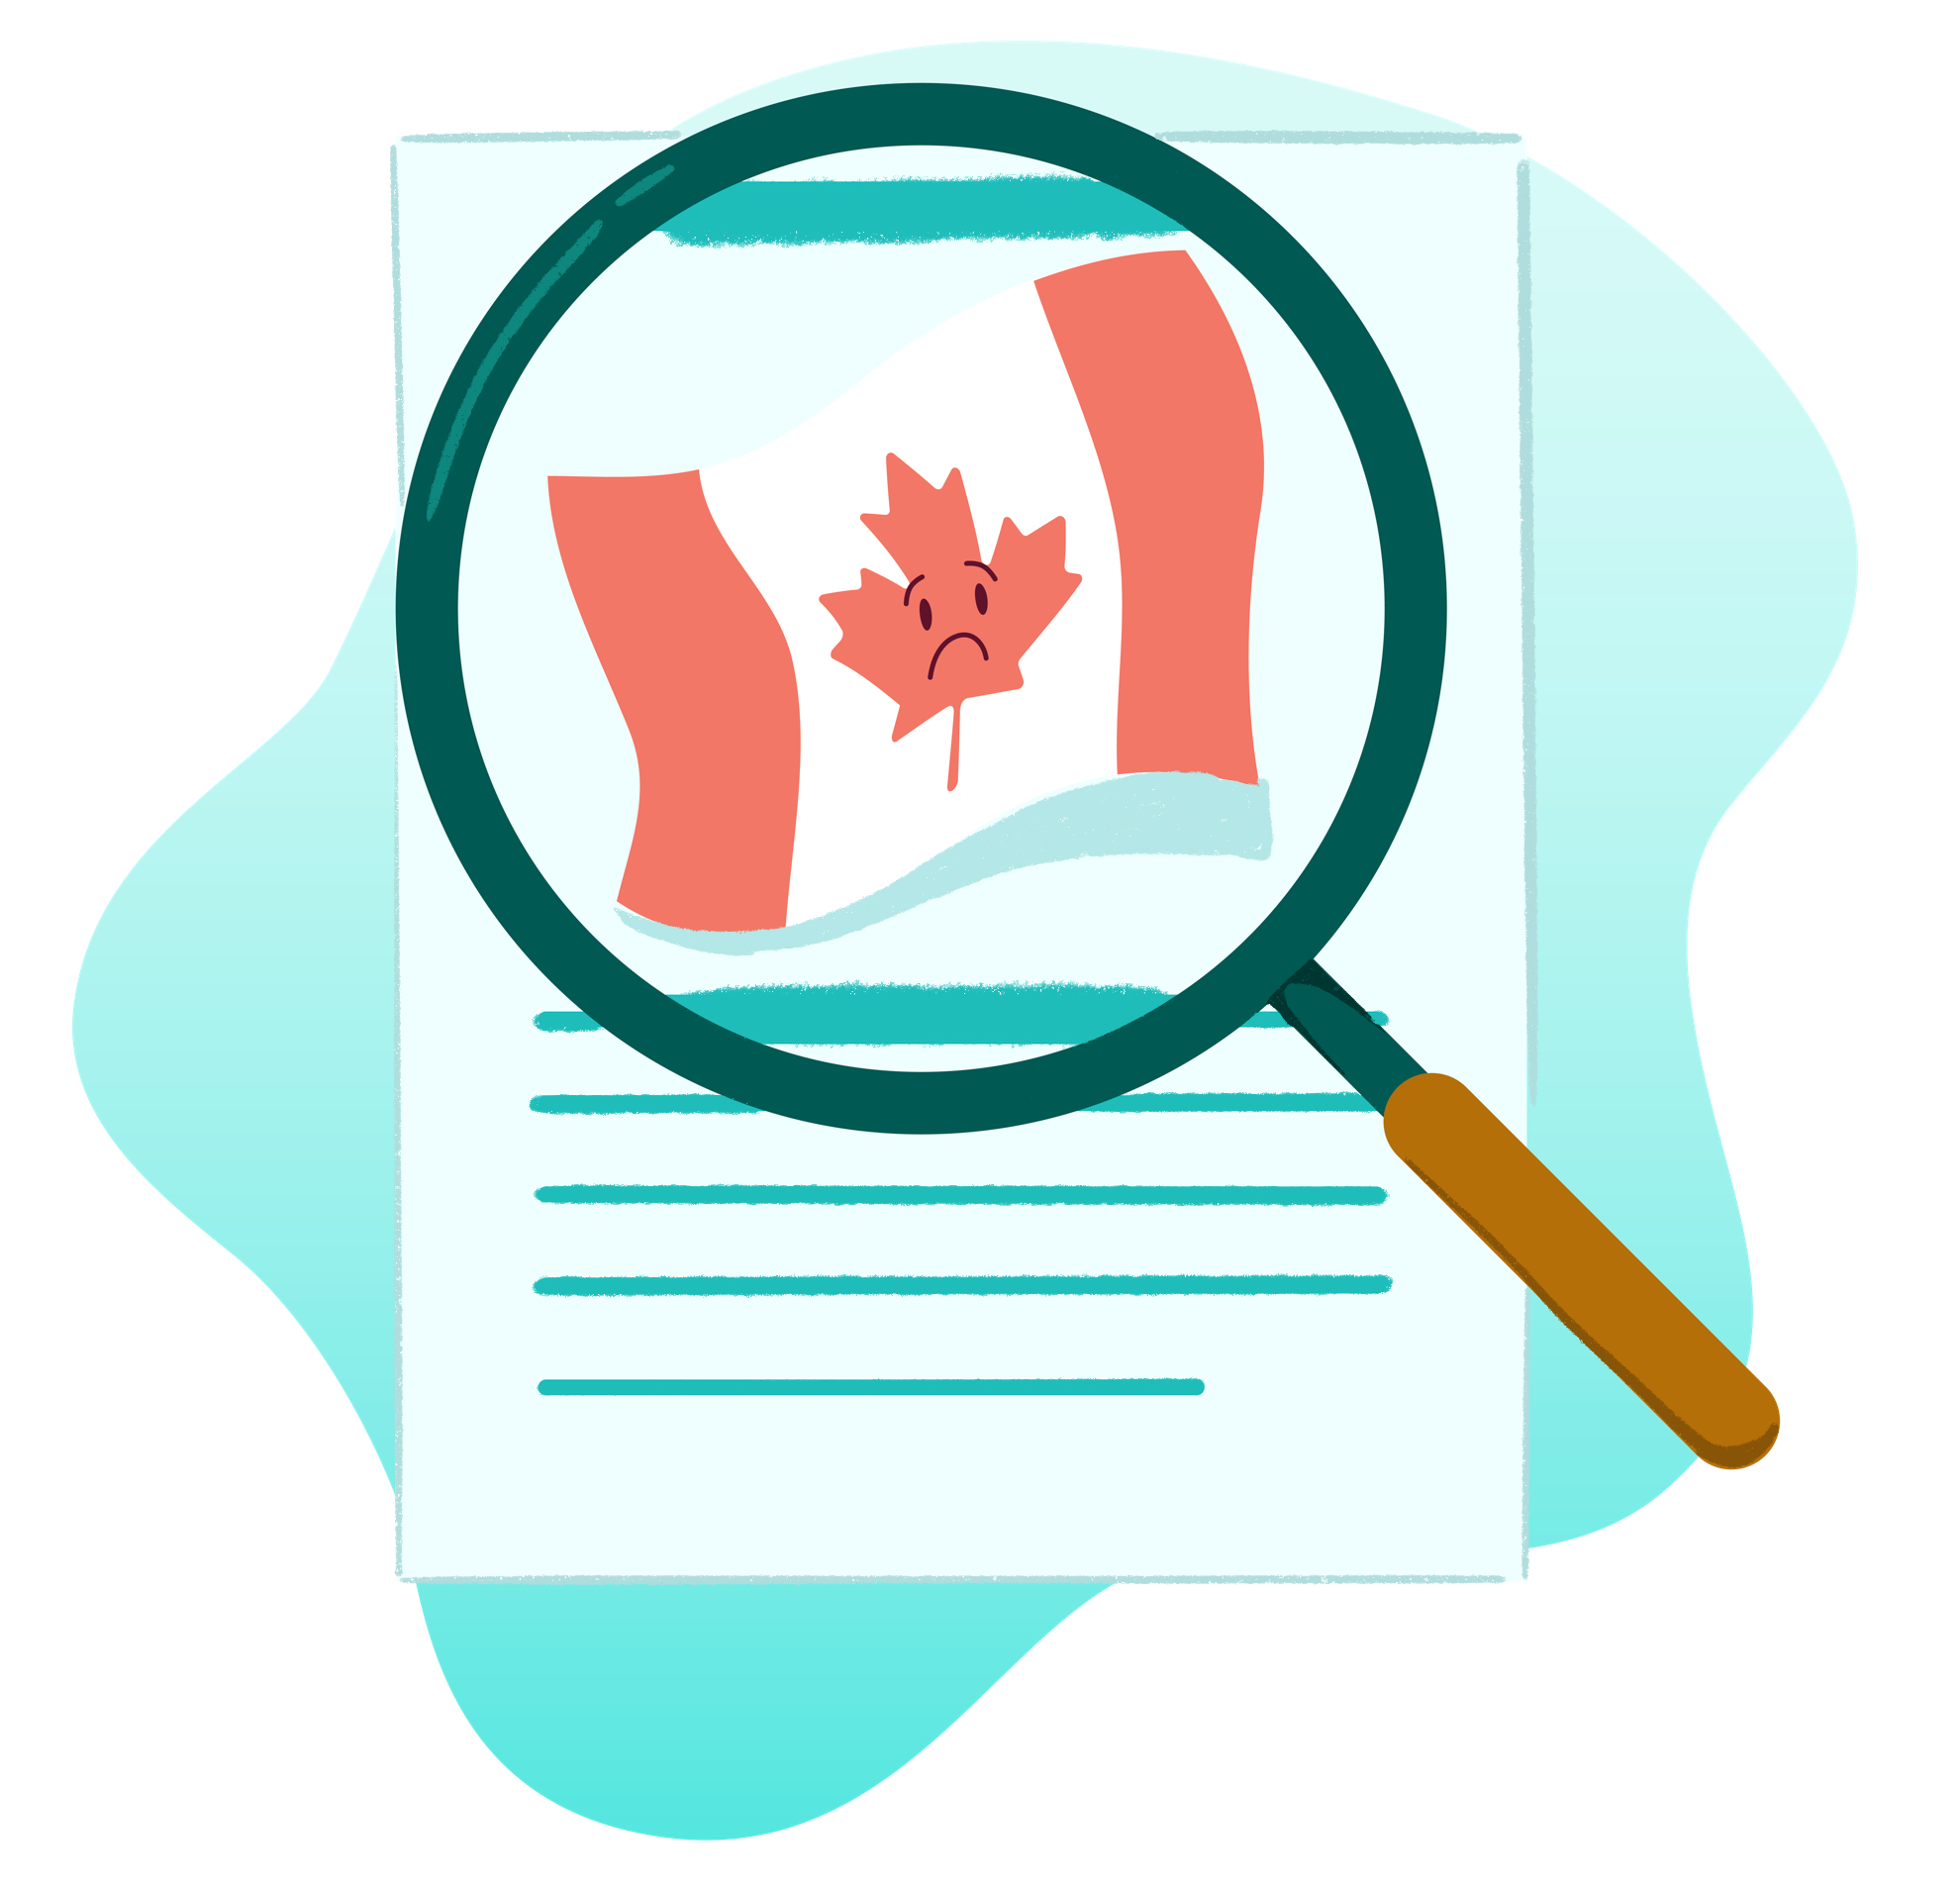 A magnifying glass is over a piece of paper. In the magnifying glass is a Canadian Flag where the maple leaf in the flag has a distressed/sad face.